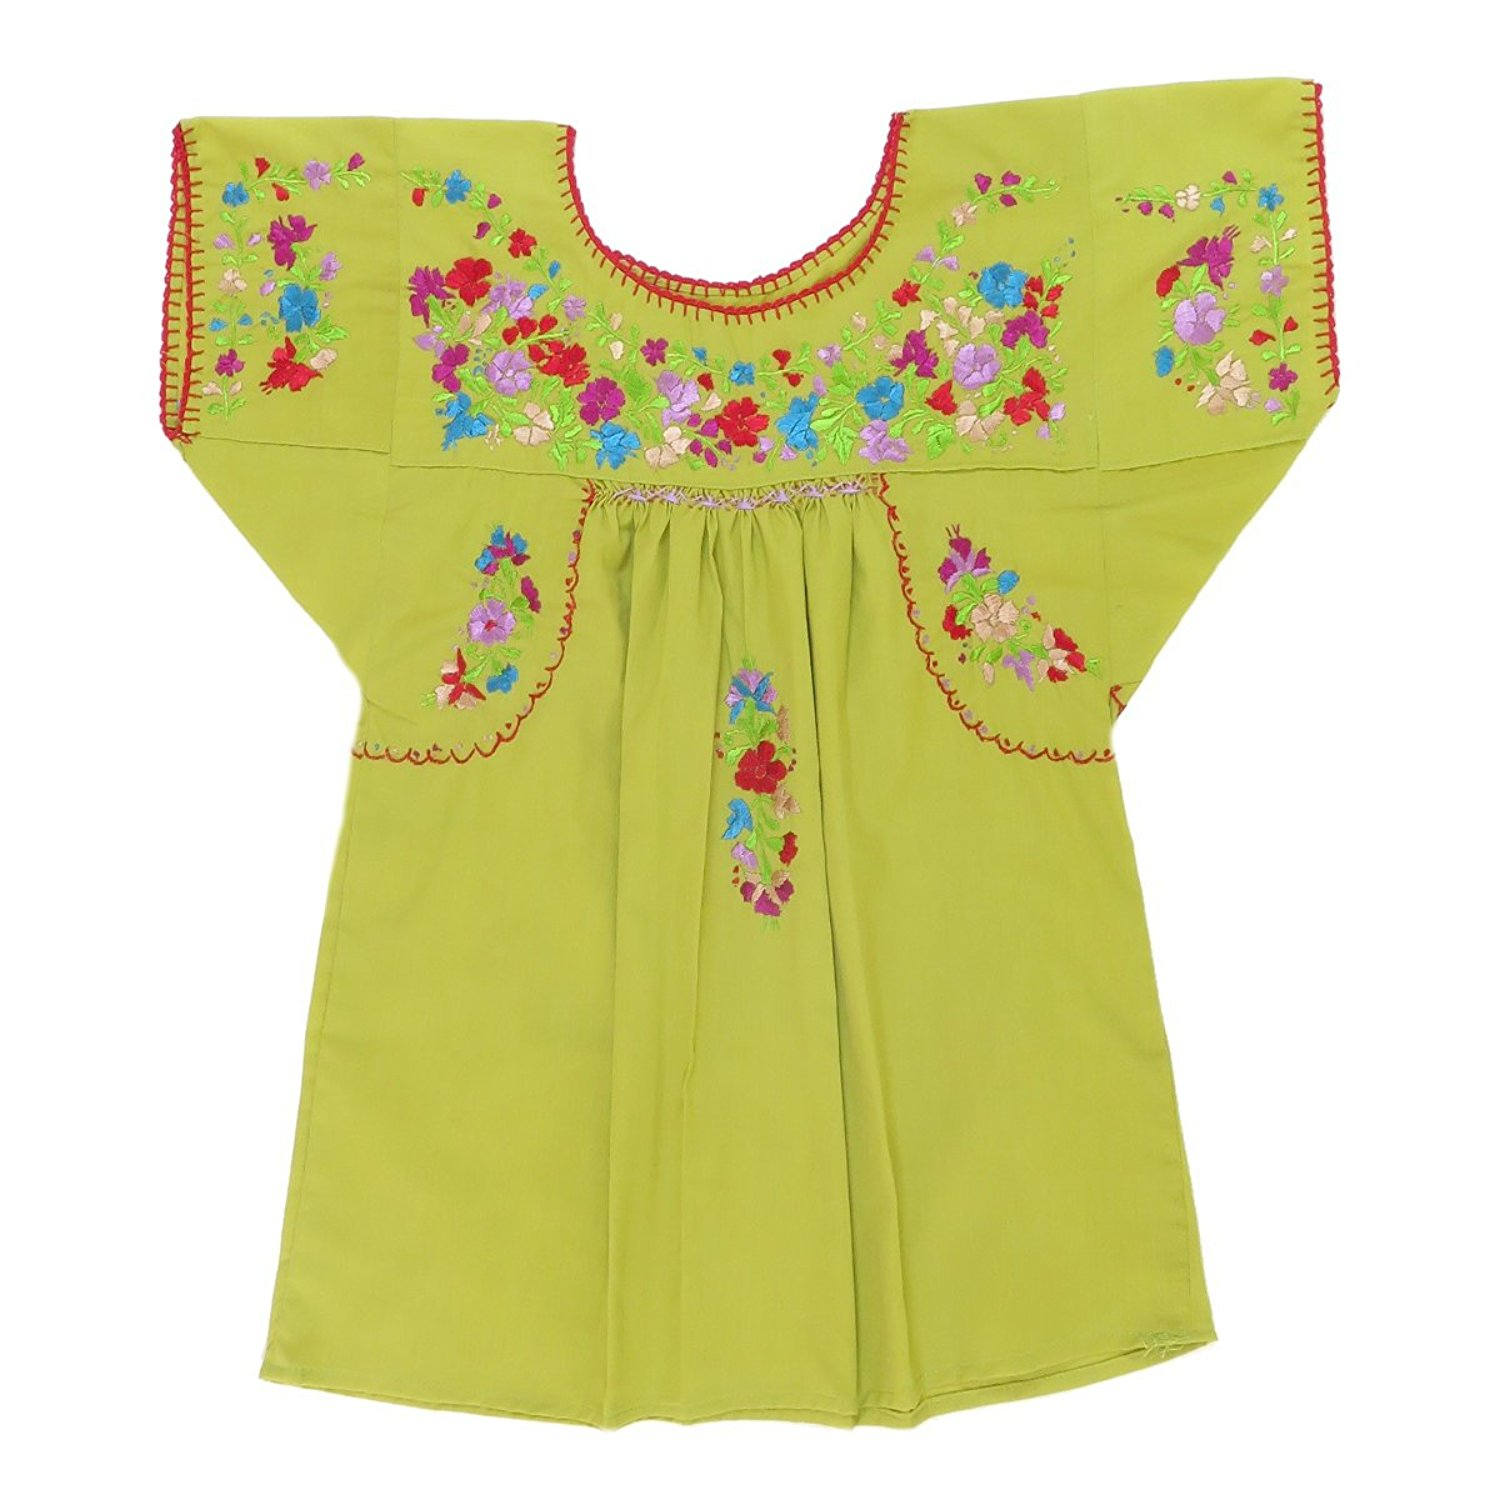 635dc2e53999f Get Quotations · Mexican Clothing Co Girls Mexican Blouse Traditional San  Antonino Poplin